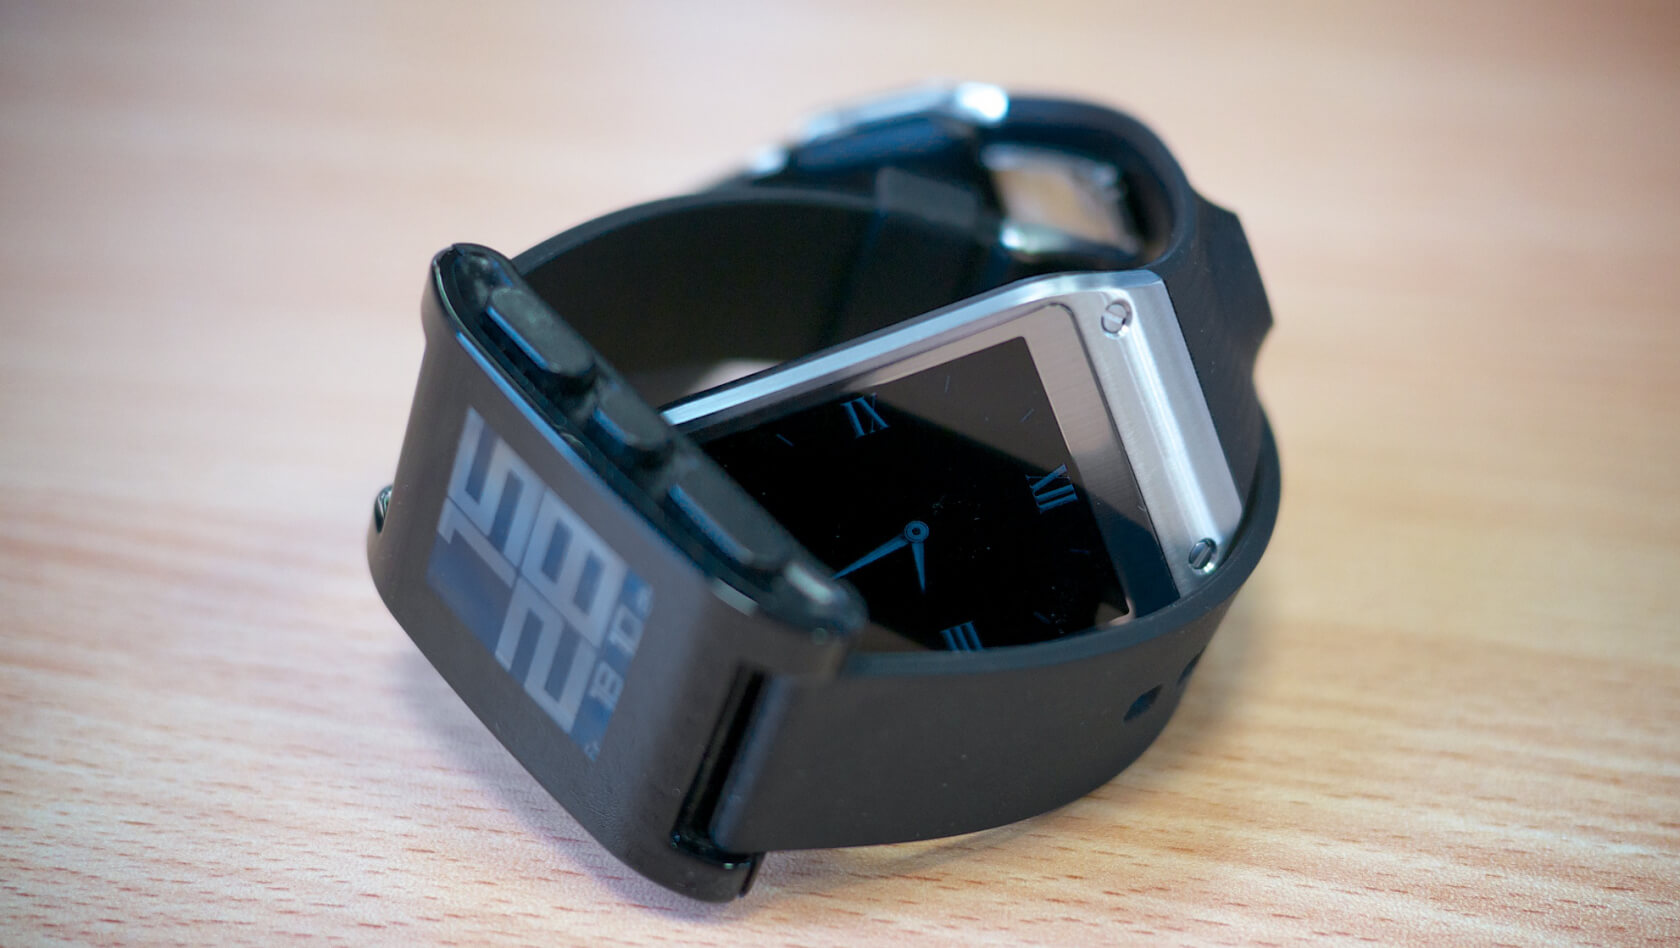 Smartwatch growth has been weak and forecasts look grim through 2021